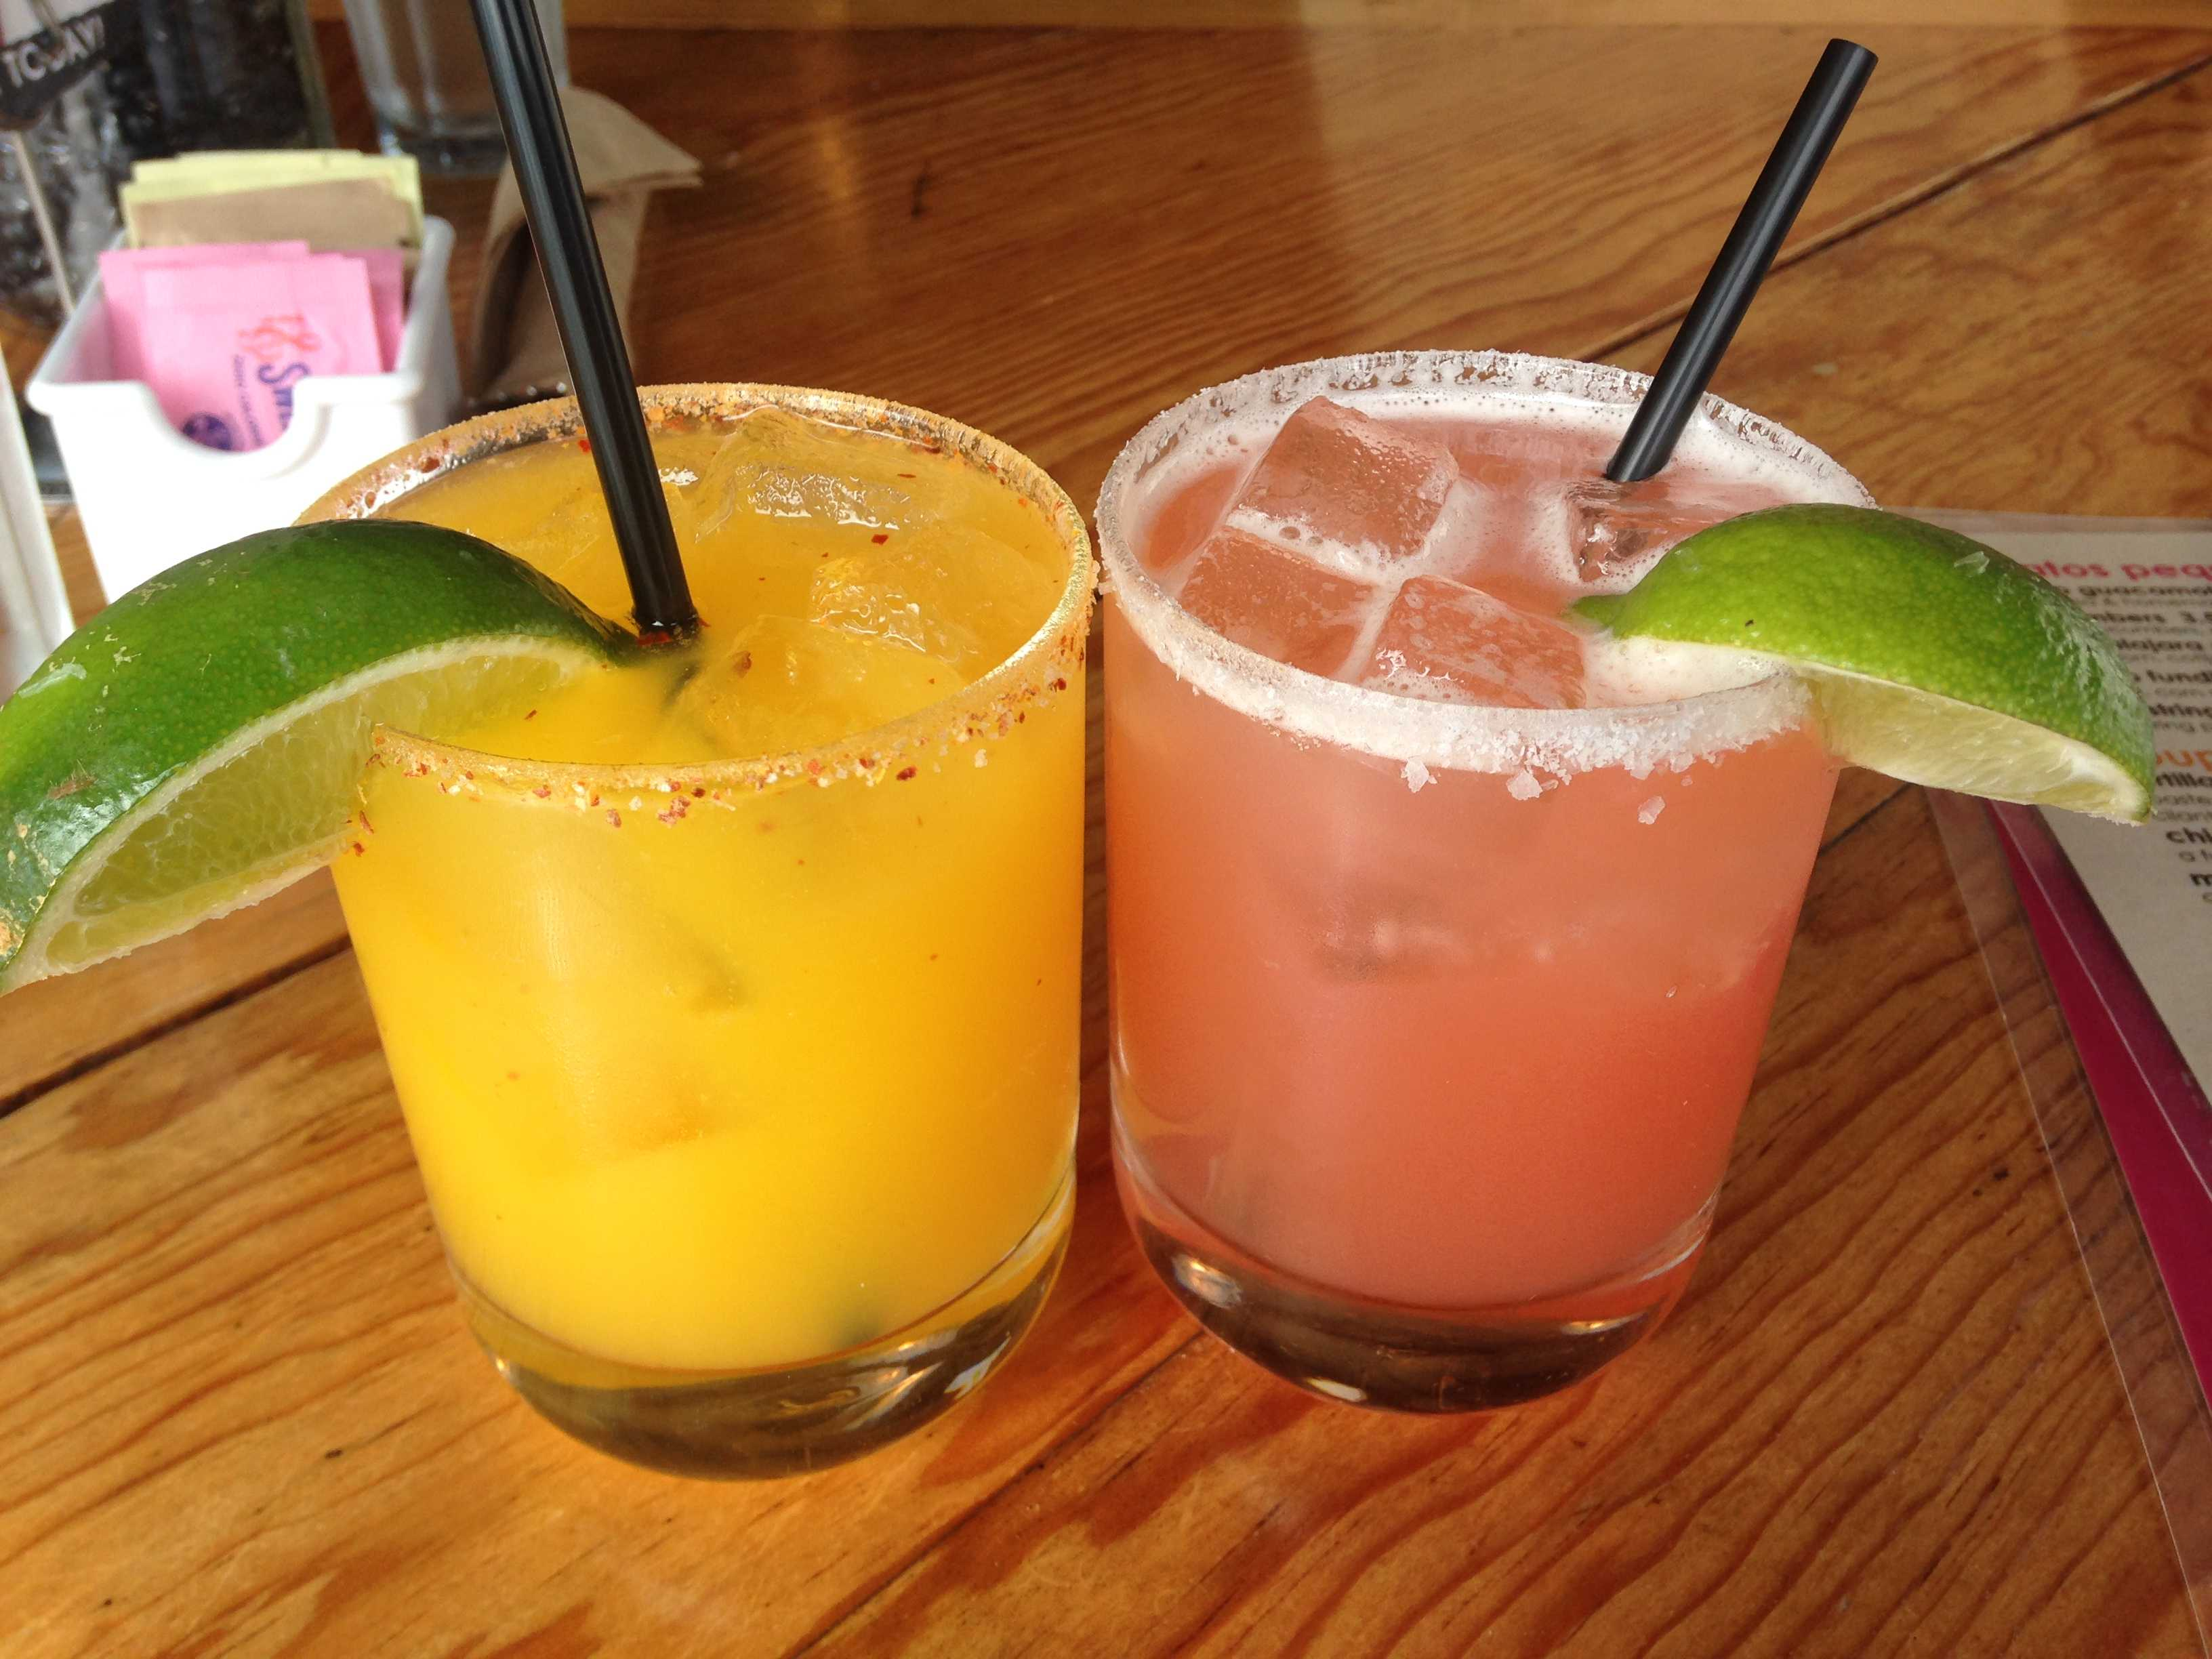 Barrio Star in Banker's Hill offers a variety of margaritas at fair prices. Photo credit: Michelle Moran